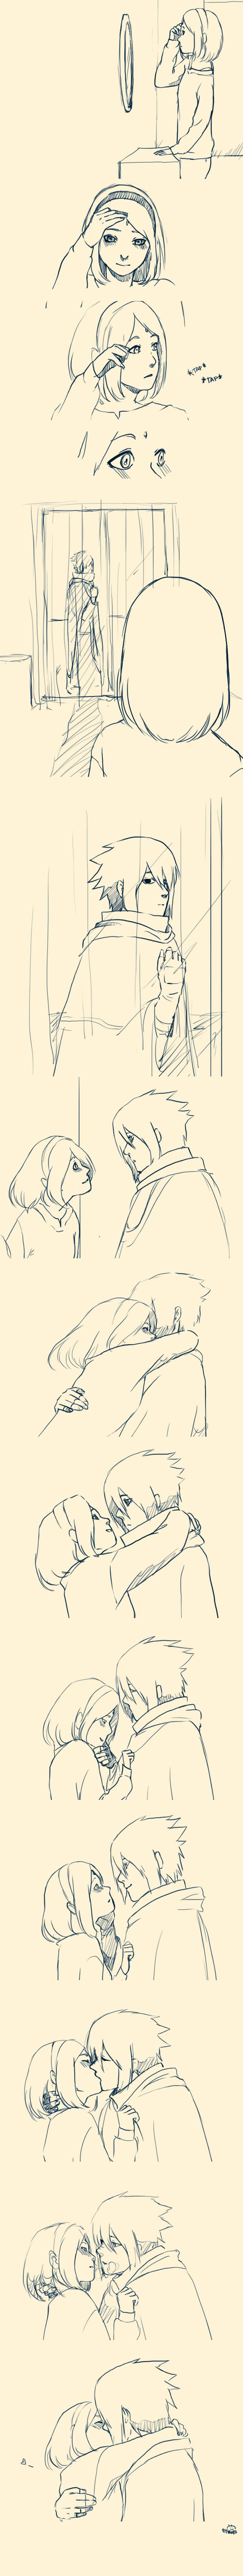 Sasusaku after The Last This is probably one of the cutest SasuSaku things I've ever seen! I love it